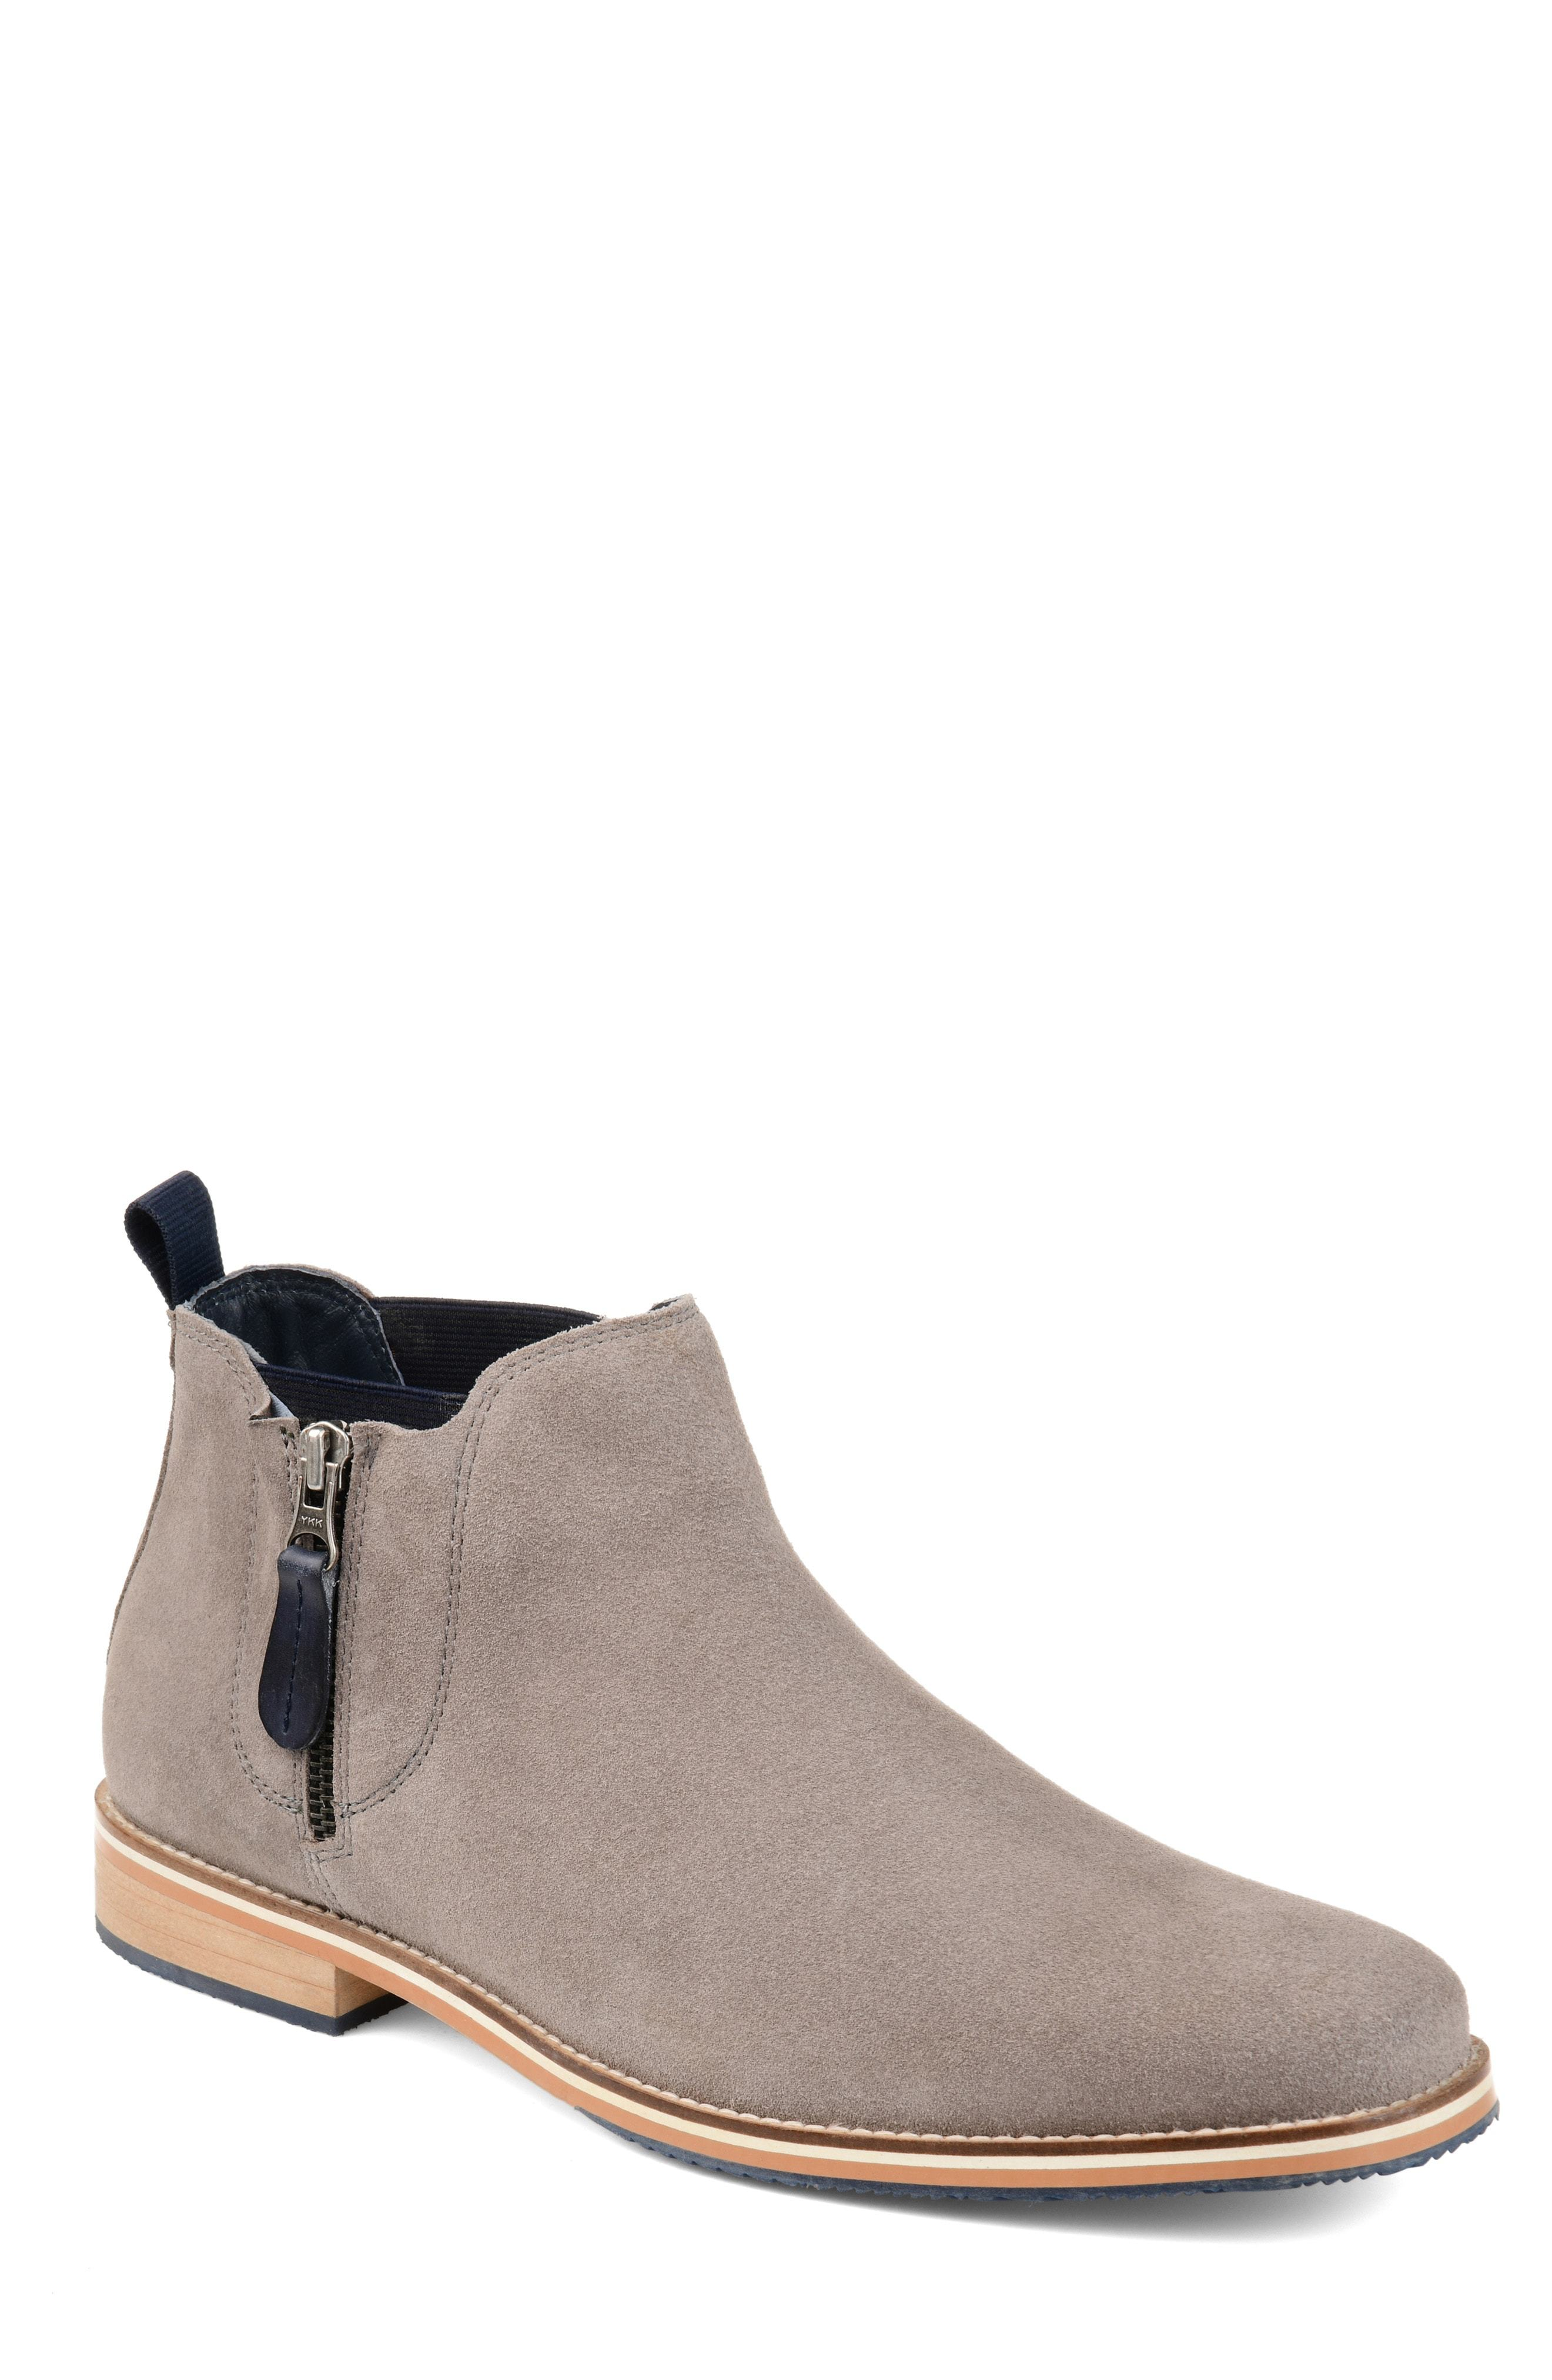 7dbcde0a6a77 ... THOMAS AND VINE Smash Zip Chelsea Boot